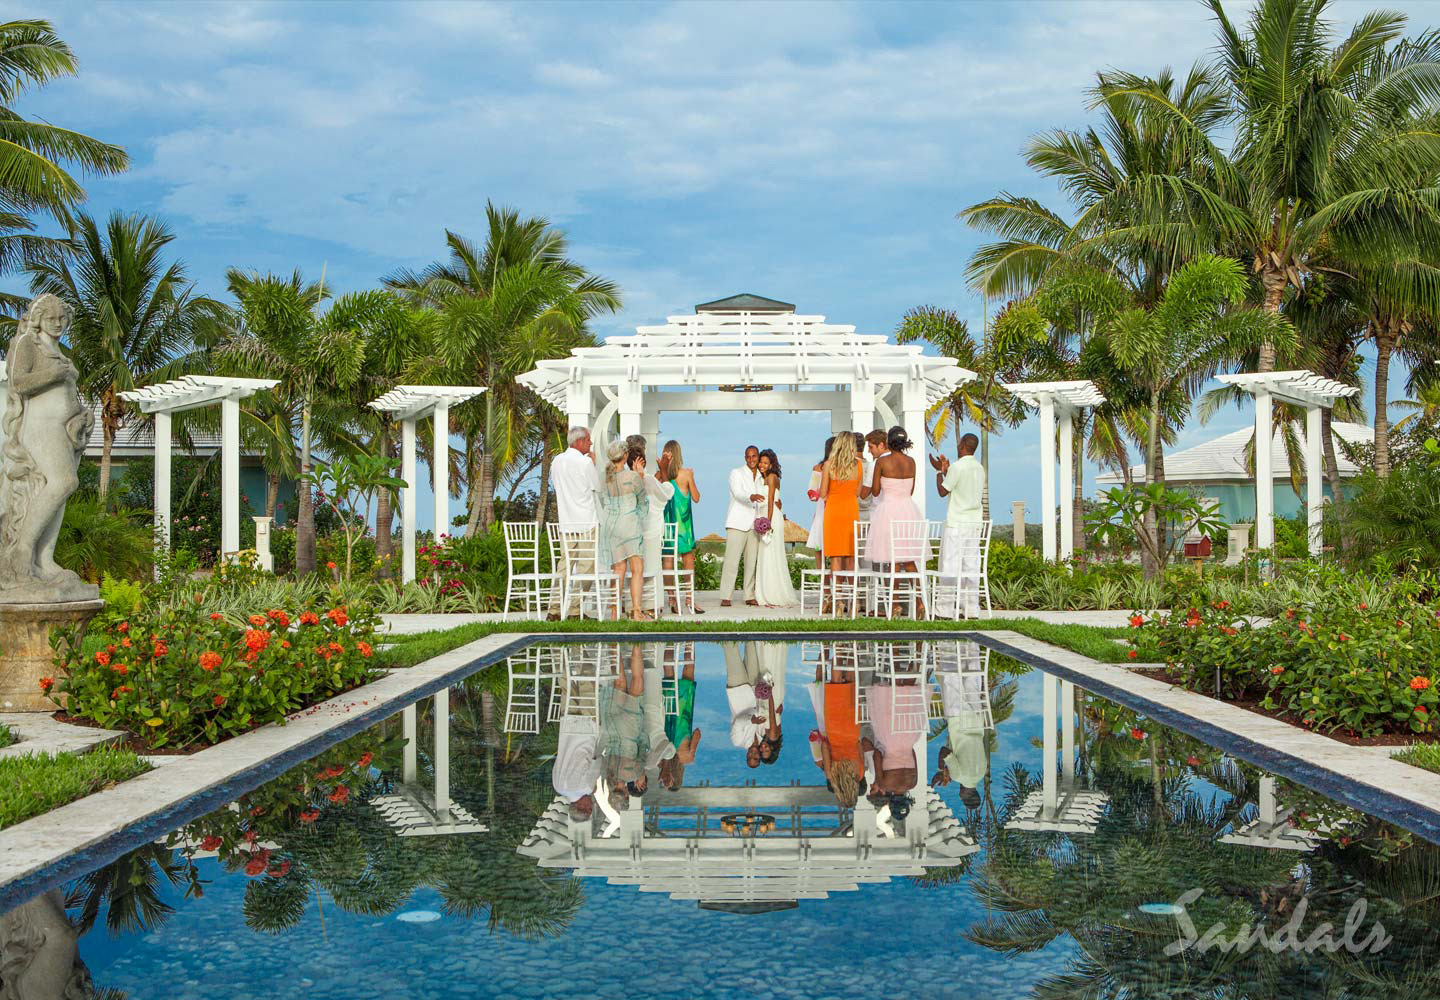 Travel Agency All-Inclusive Resort Sandals Emerald Bay 102